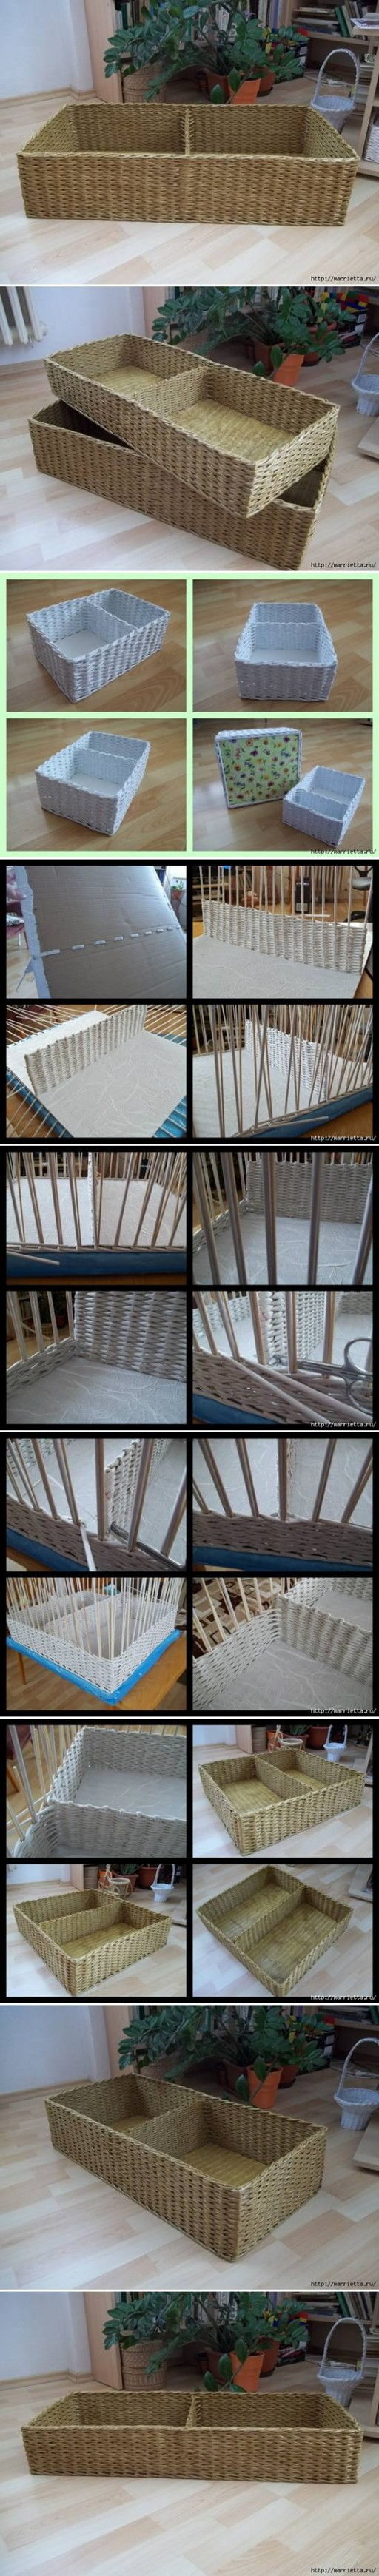 How to make storage baskets with Newspaper step by step DIY tutorial instructions